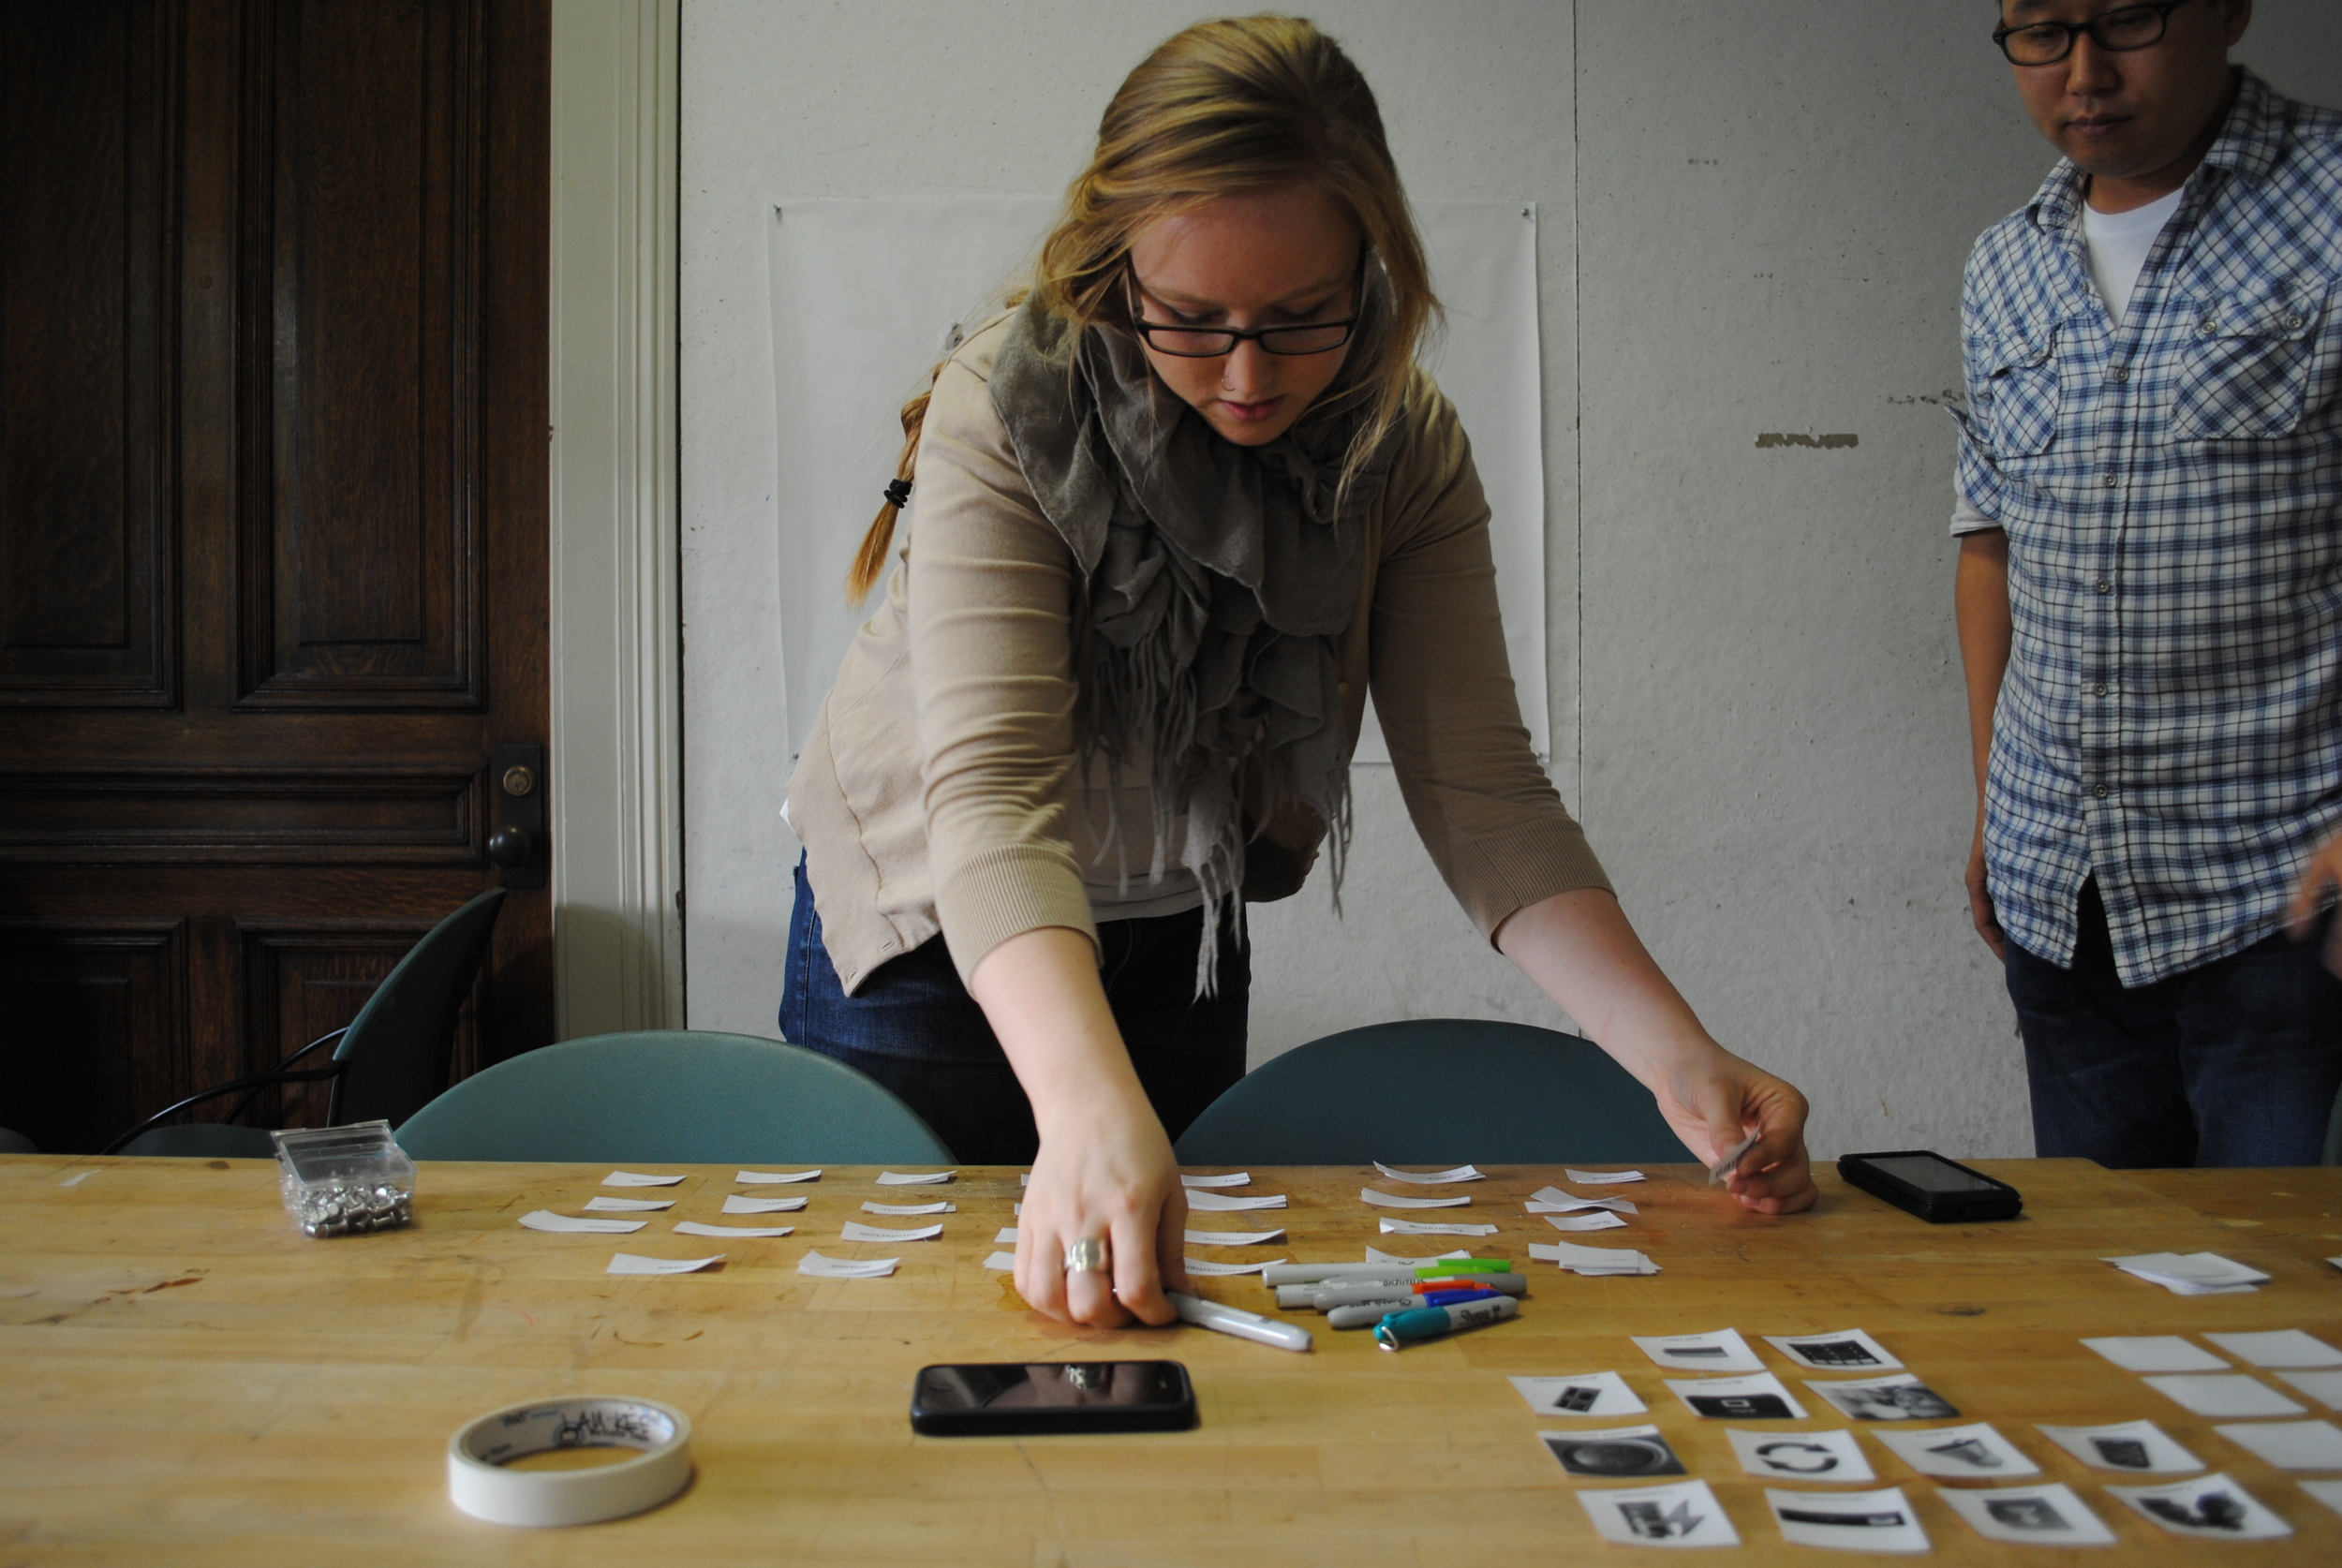 A participant uses make tools to create and communicate in the design process